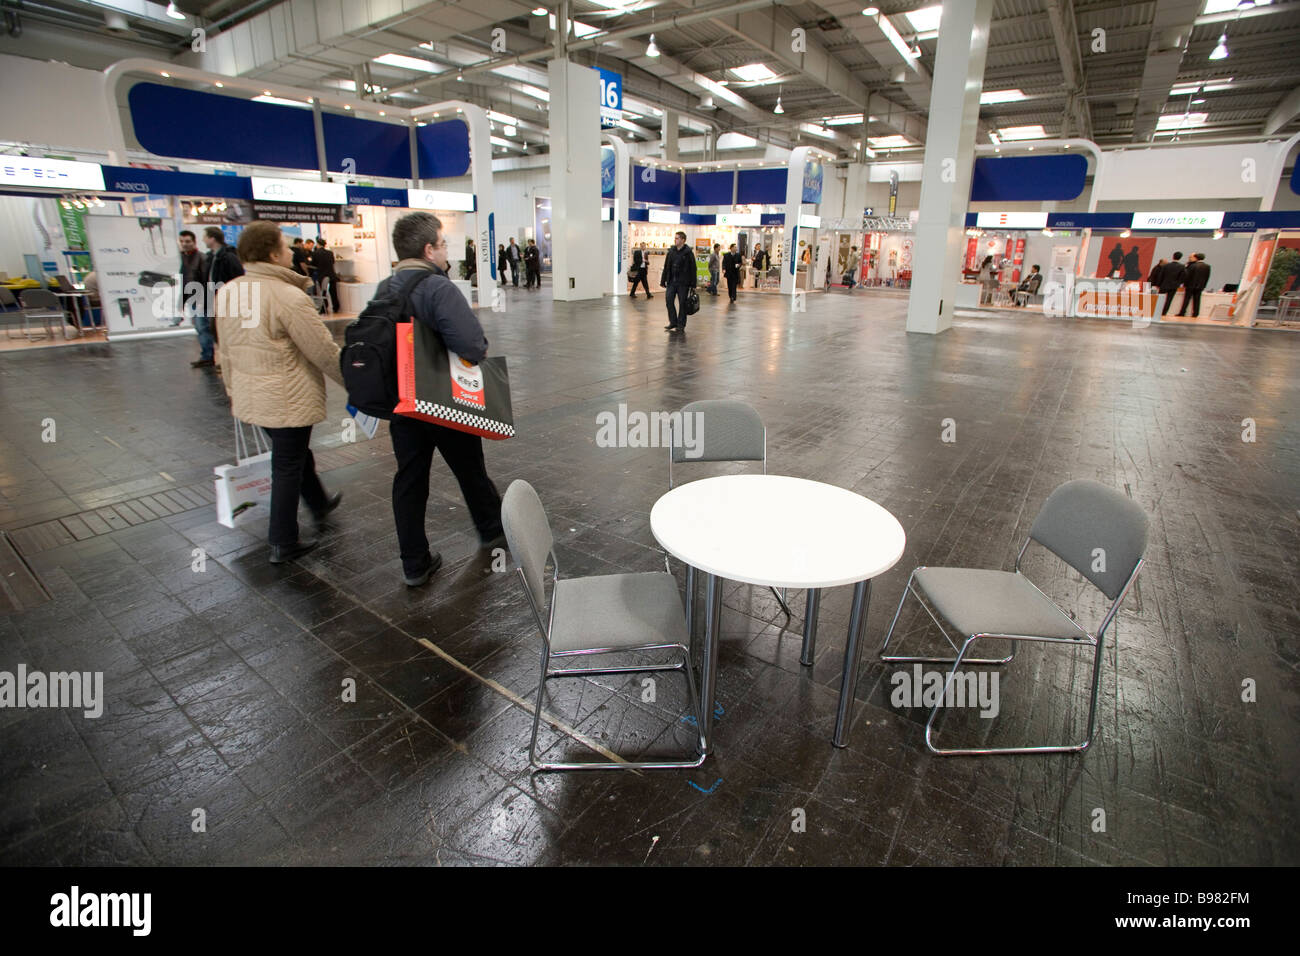 CeBIT due to the economic crisis various fair pavilions are not completely occupied with fair booths - Stock Image